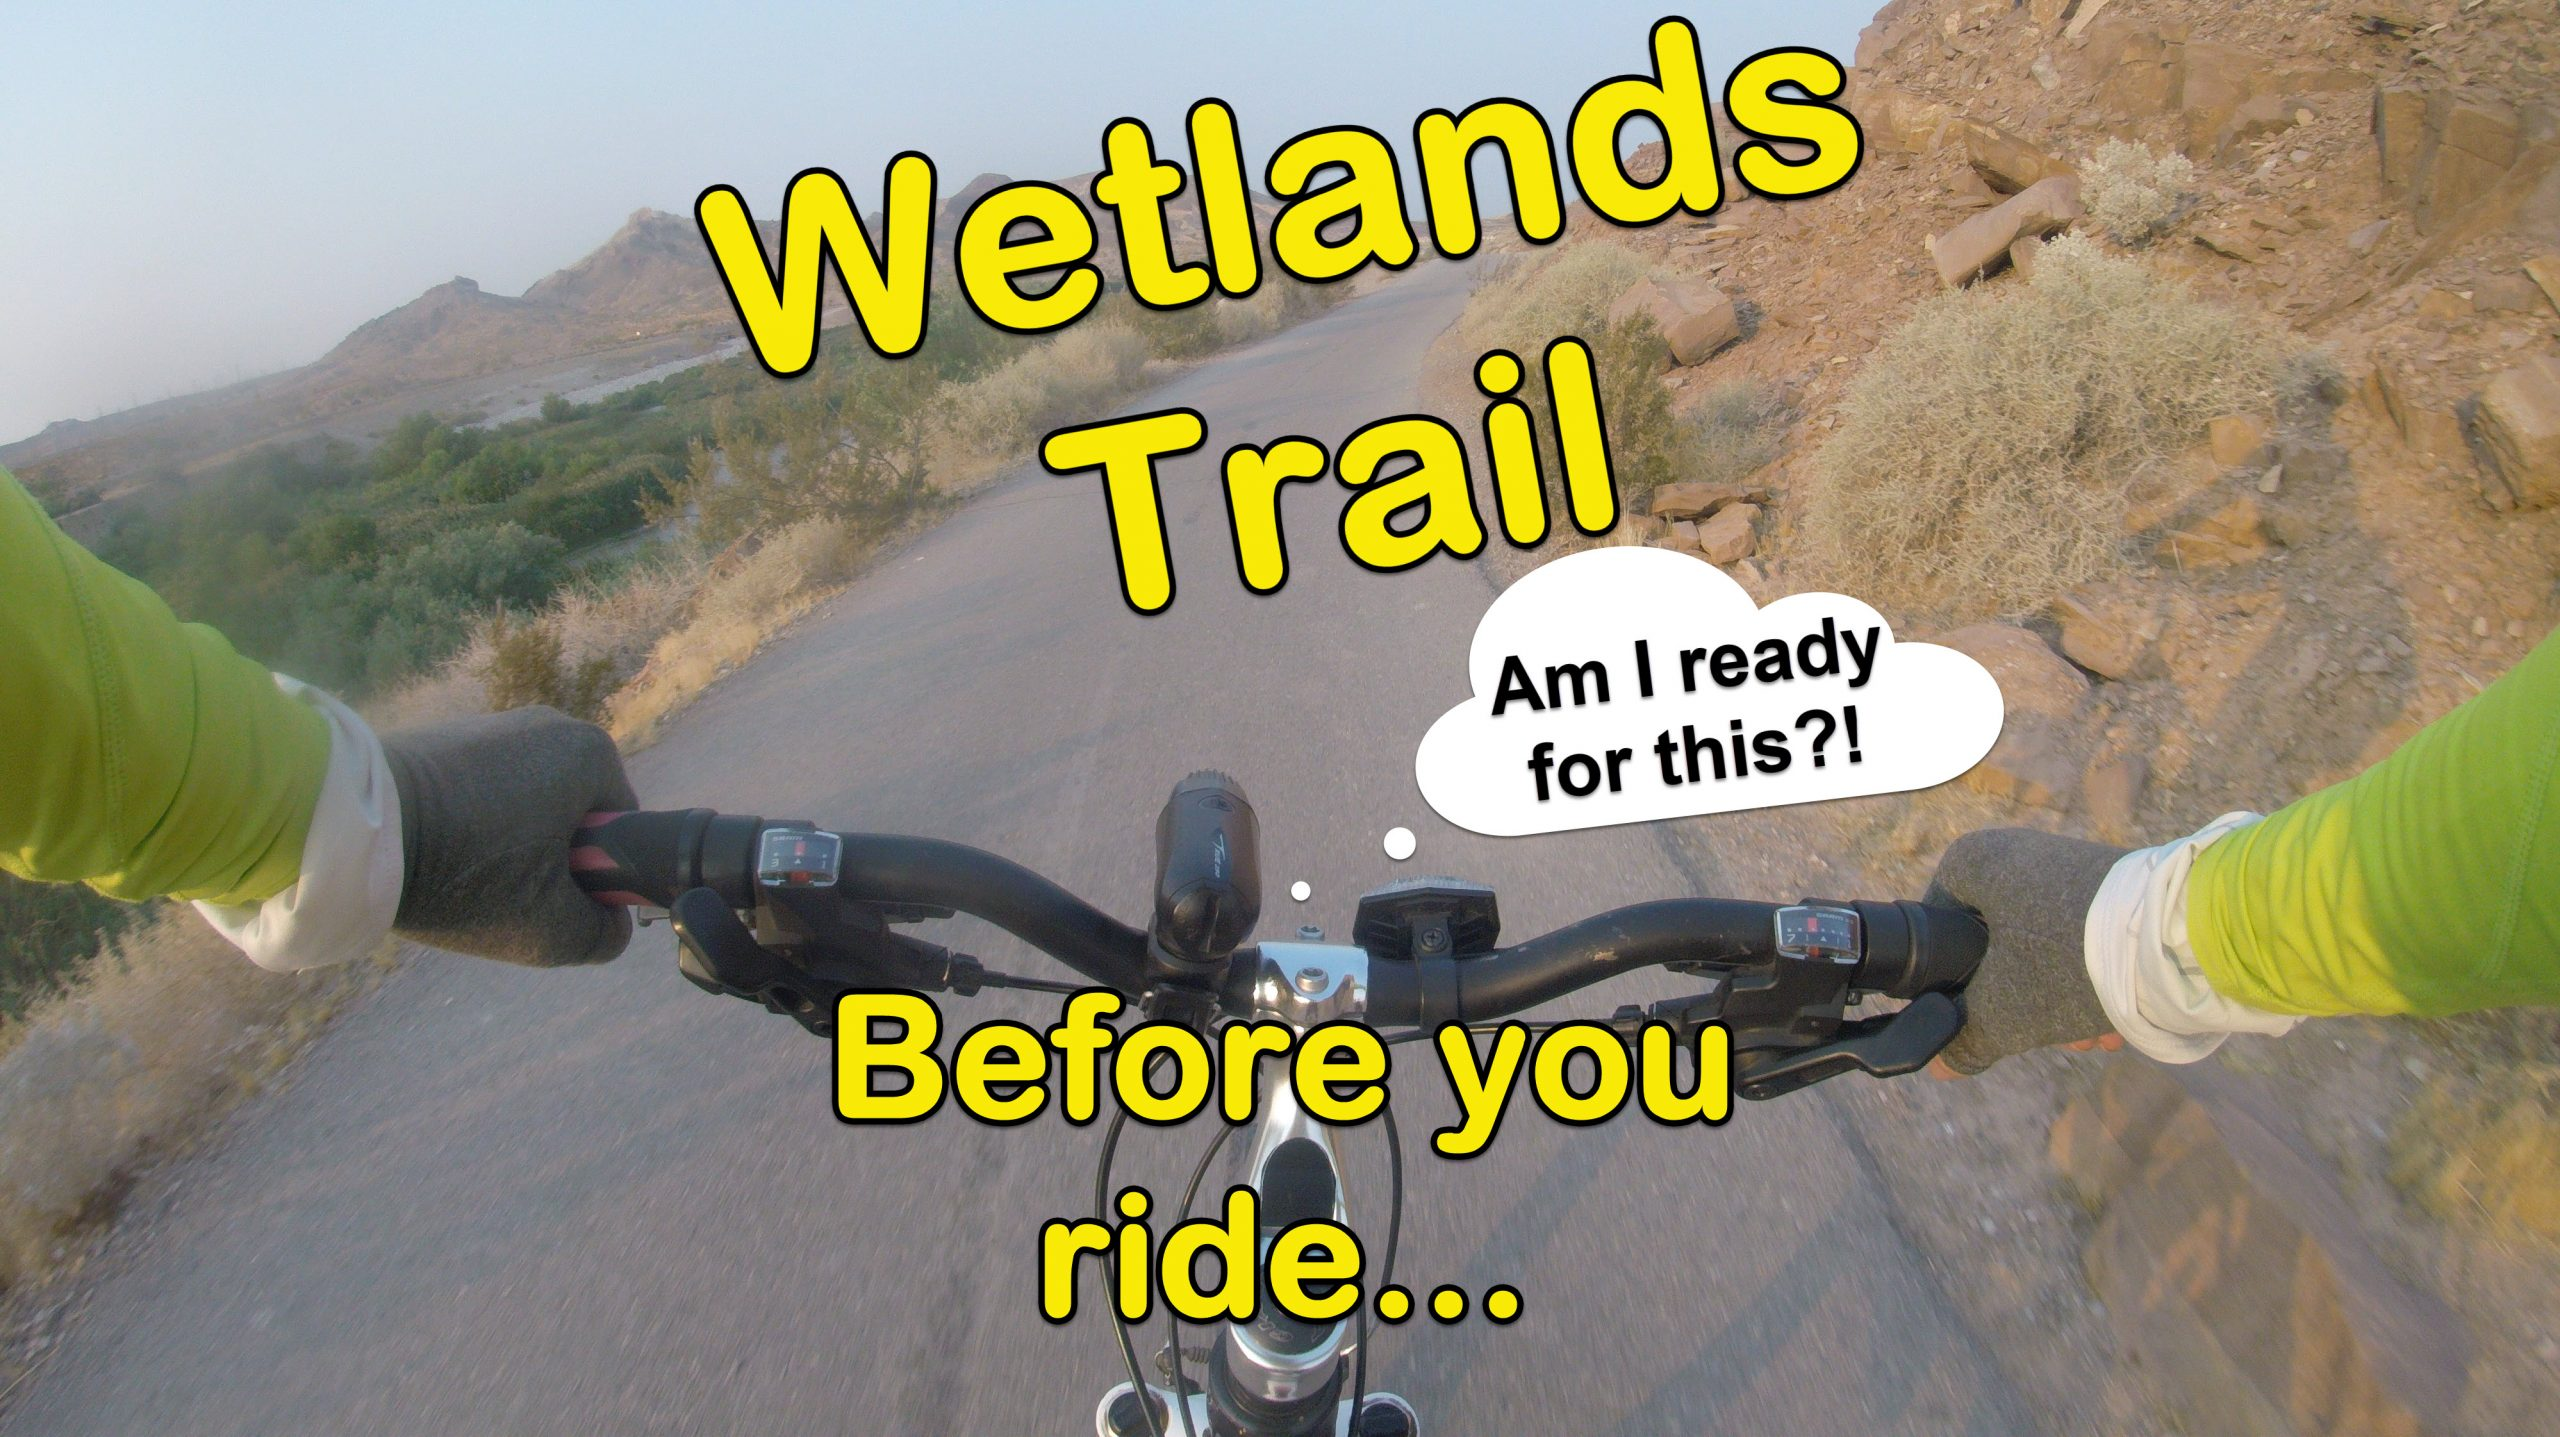 Biking Wetlands Trail in Henderson, NV